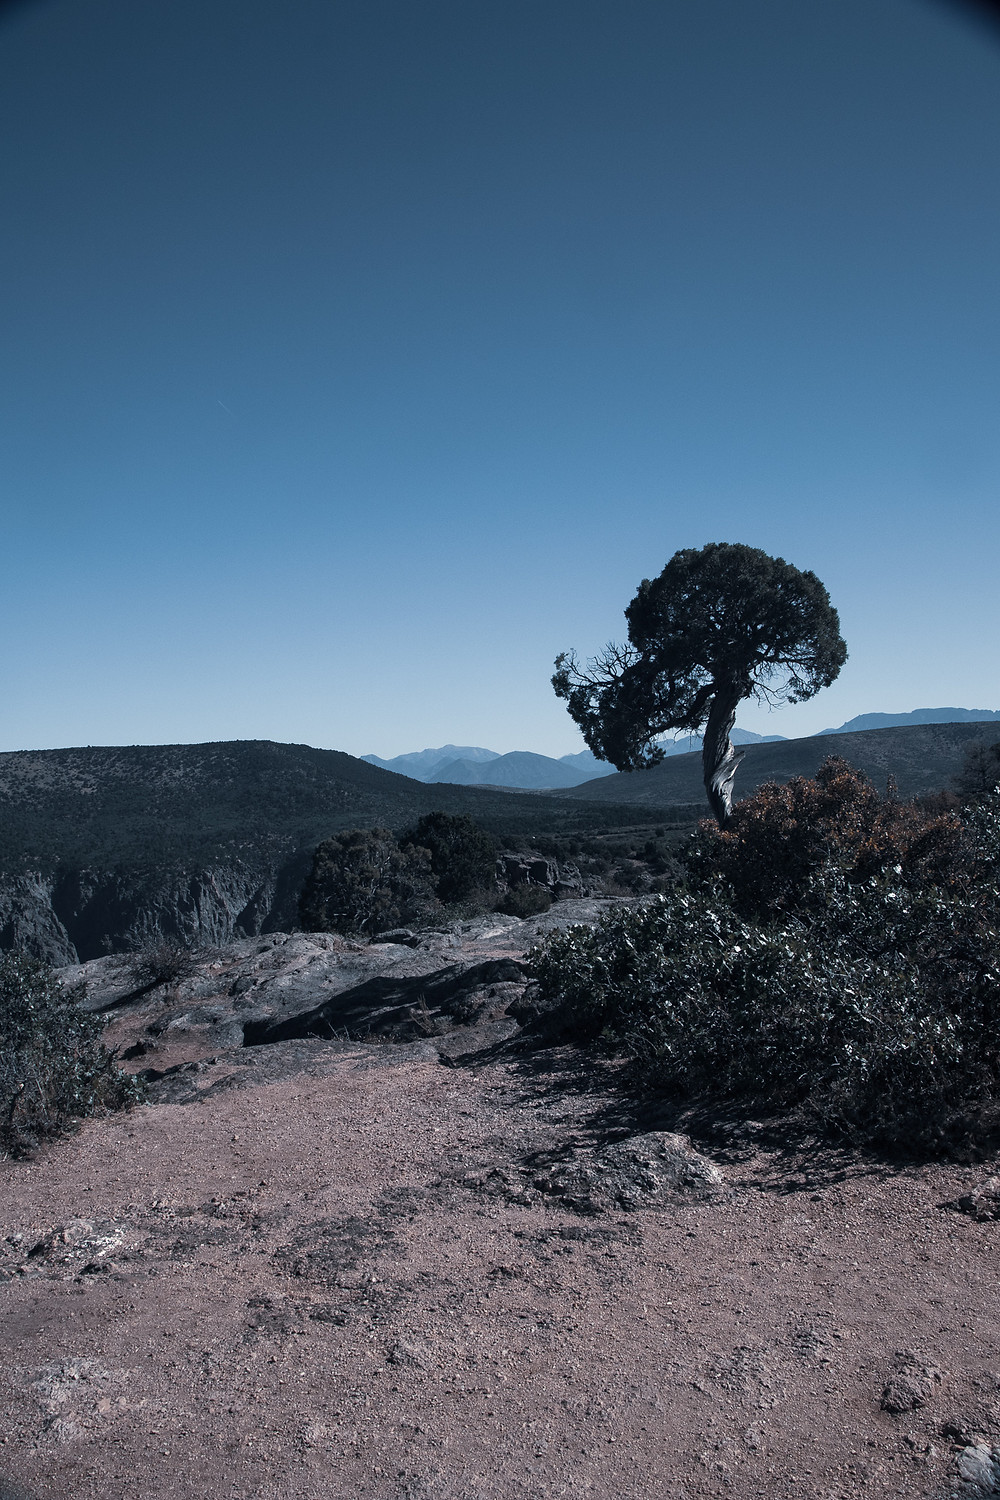 I often think about all the changes my grandfather experienced. He was born in 1891 so you can imagine the changes he would have seen. But then I see this tree standing near the edge of a cliff in Black Canyon of the Gunnison and have to really wonder about all the things it has been witness to.